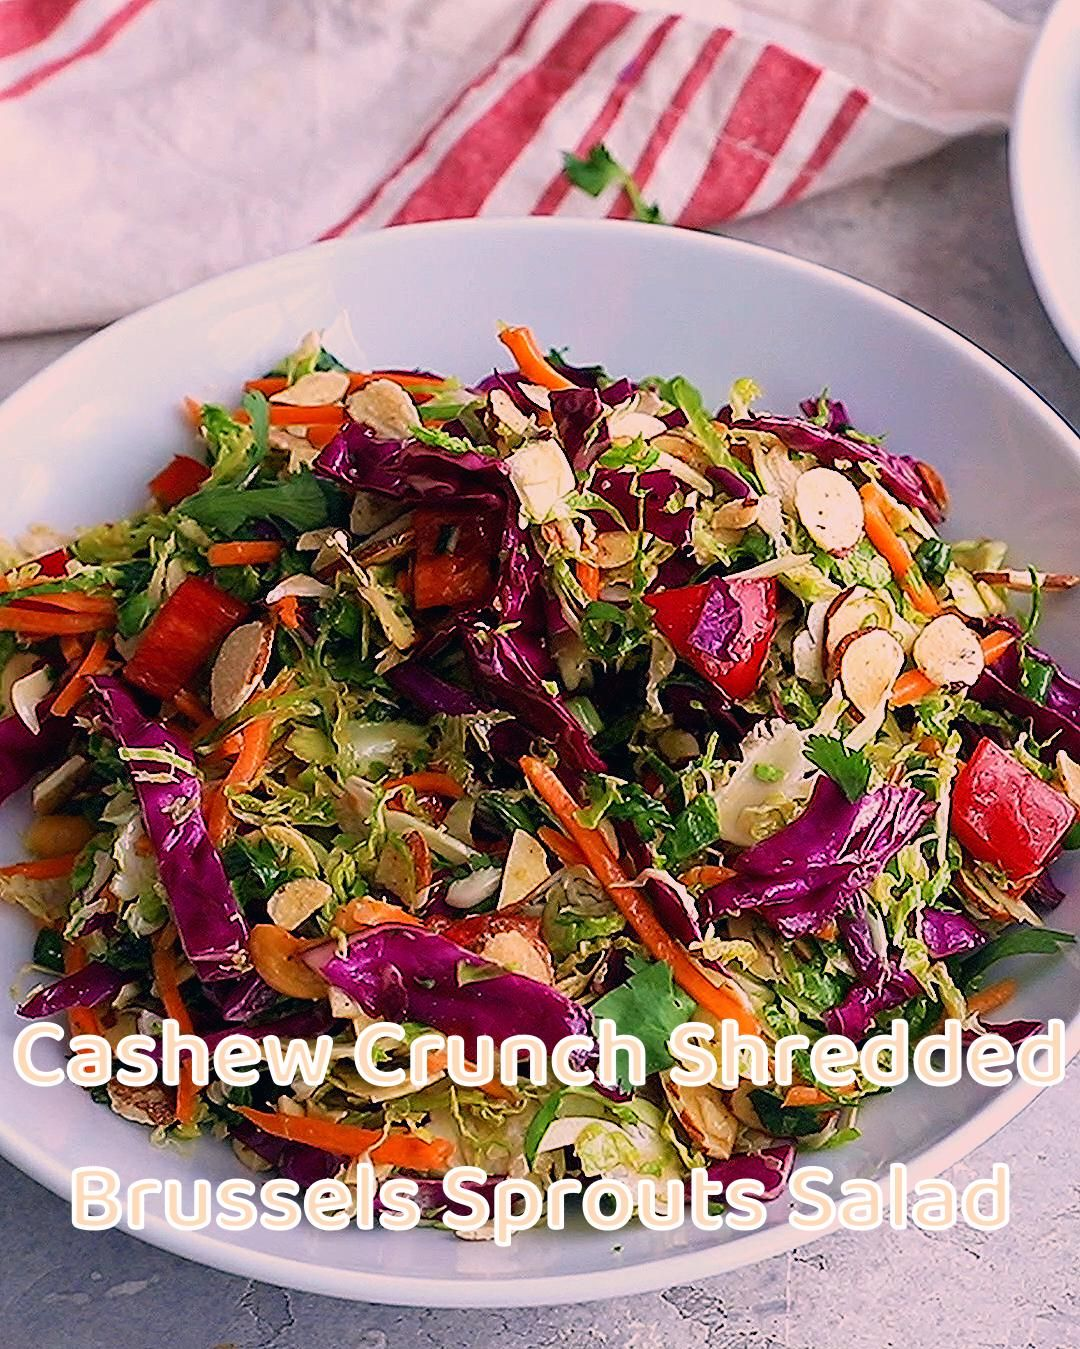 Delicious cashew crunch shredded brussels sprouts salad tossed in a flavorful sesame ginger dressing. This easy vegan salad recipe is loaded with colorful veggies and topped with crunchy roasted cashews and toasted almonds. Great for meal prep, parties and potlucks! #saladrecipe #vegetarian #mealprep #potluck